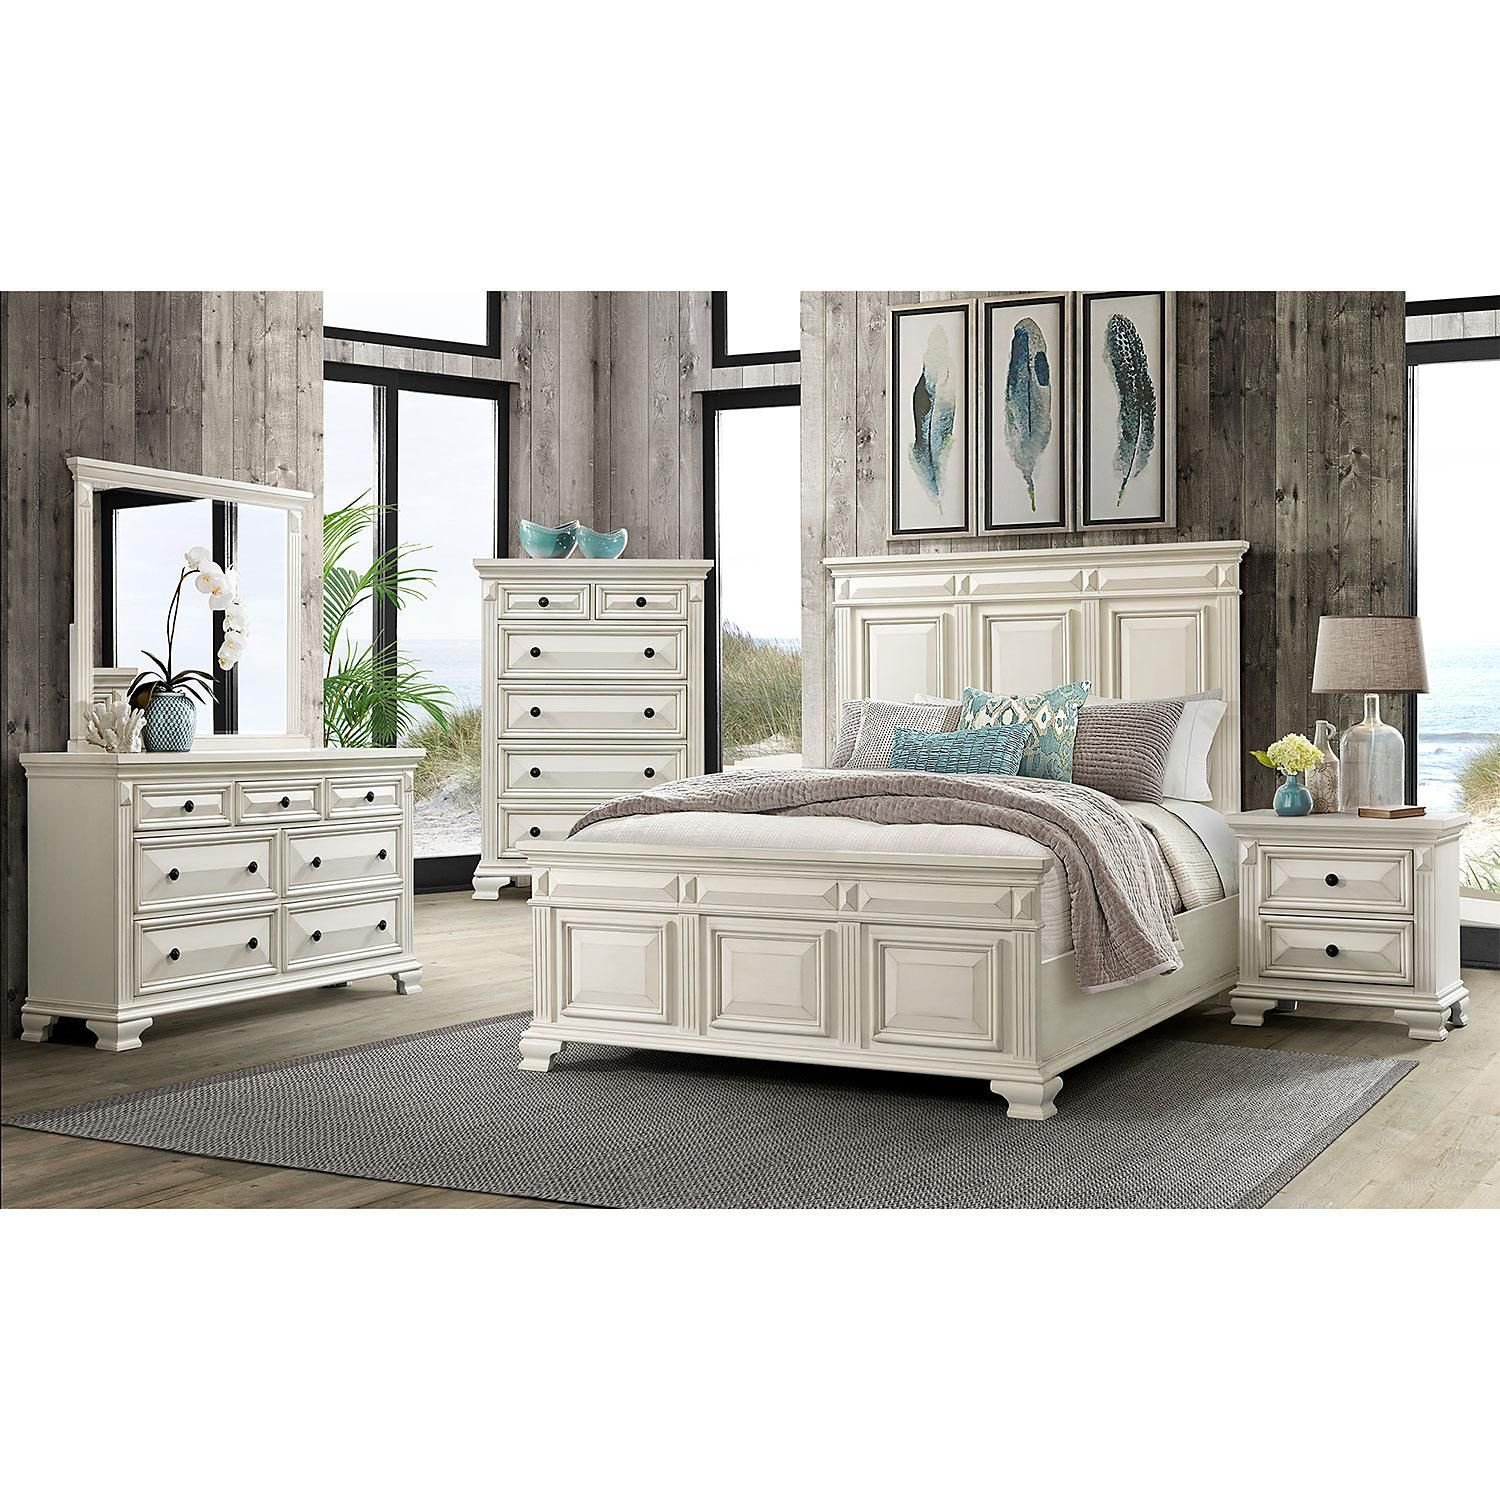 Queen Bedroom Set Cheap Elegant $1599 00 society Den Trent Panel 6 Piece King Bedroom Set